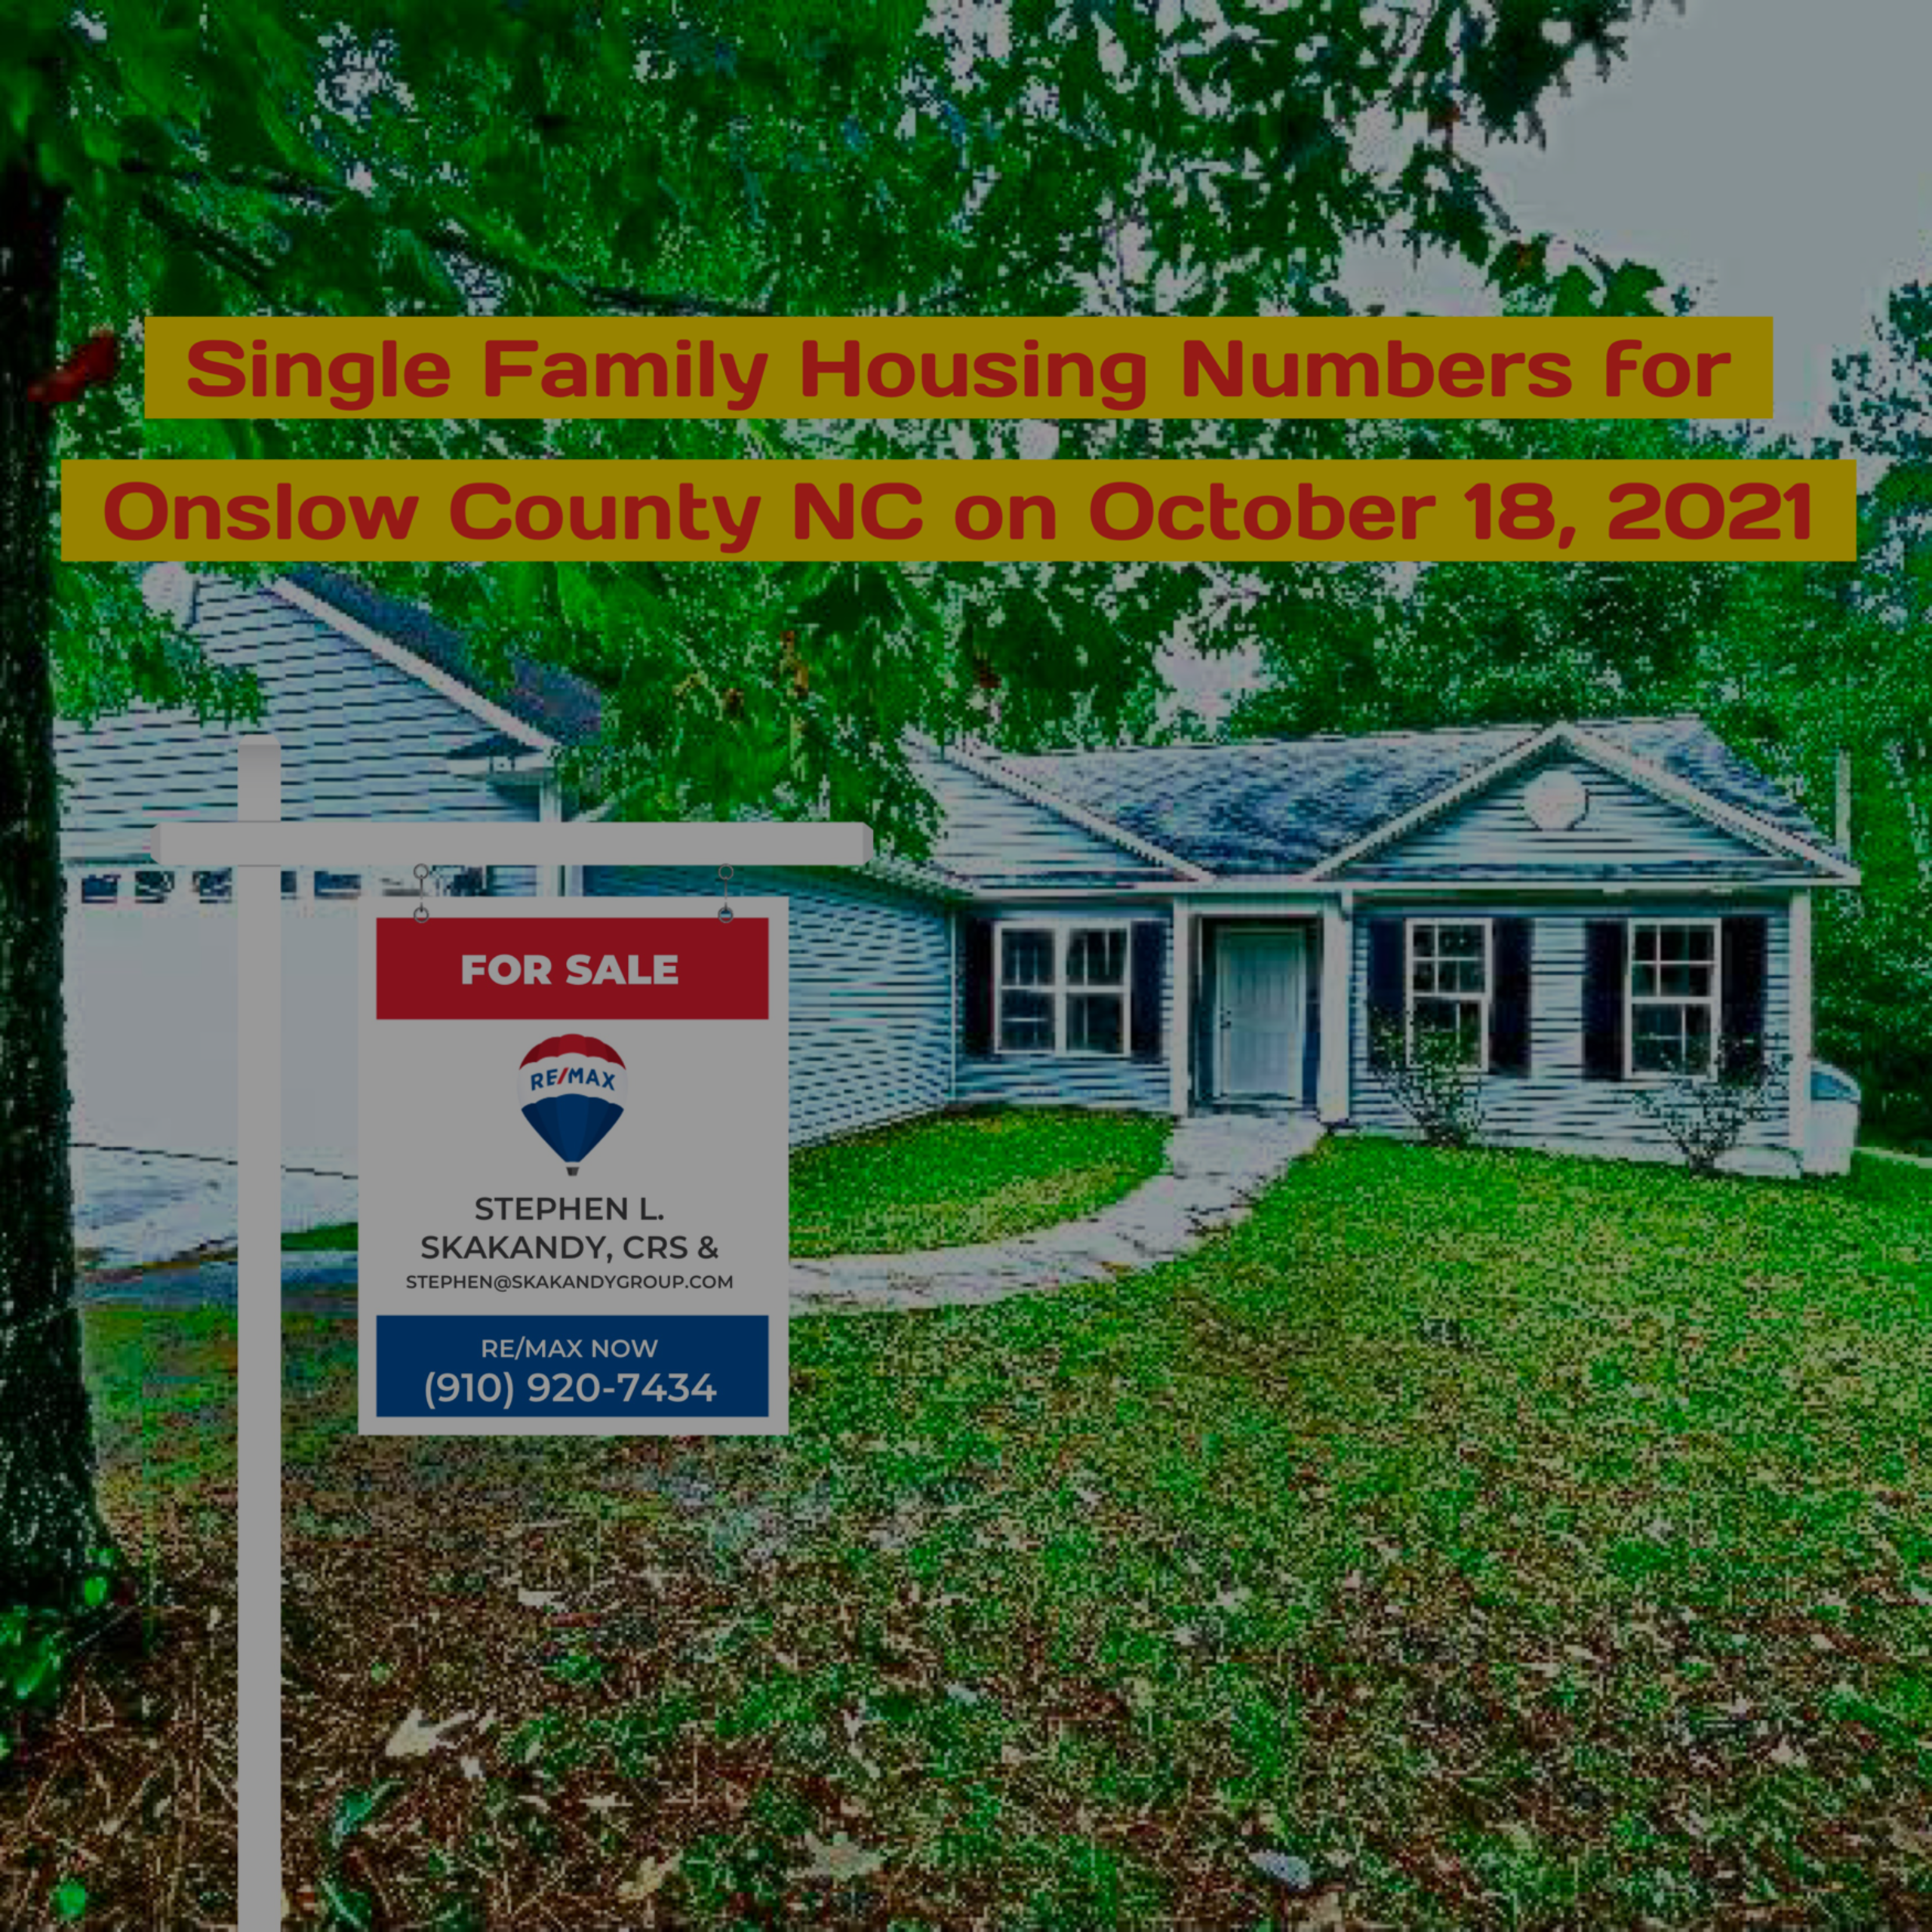 Single Family Housing Numbers for Onslow County NC on October 18, 2021